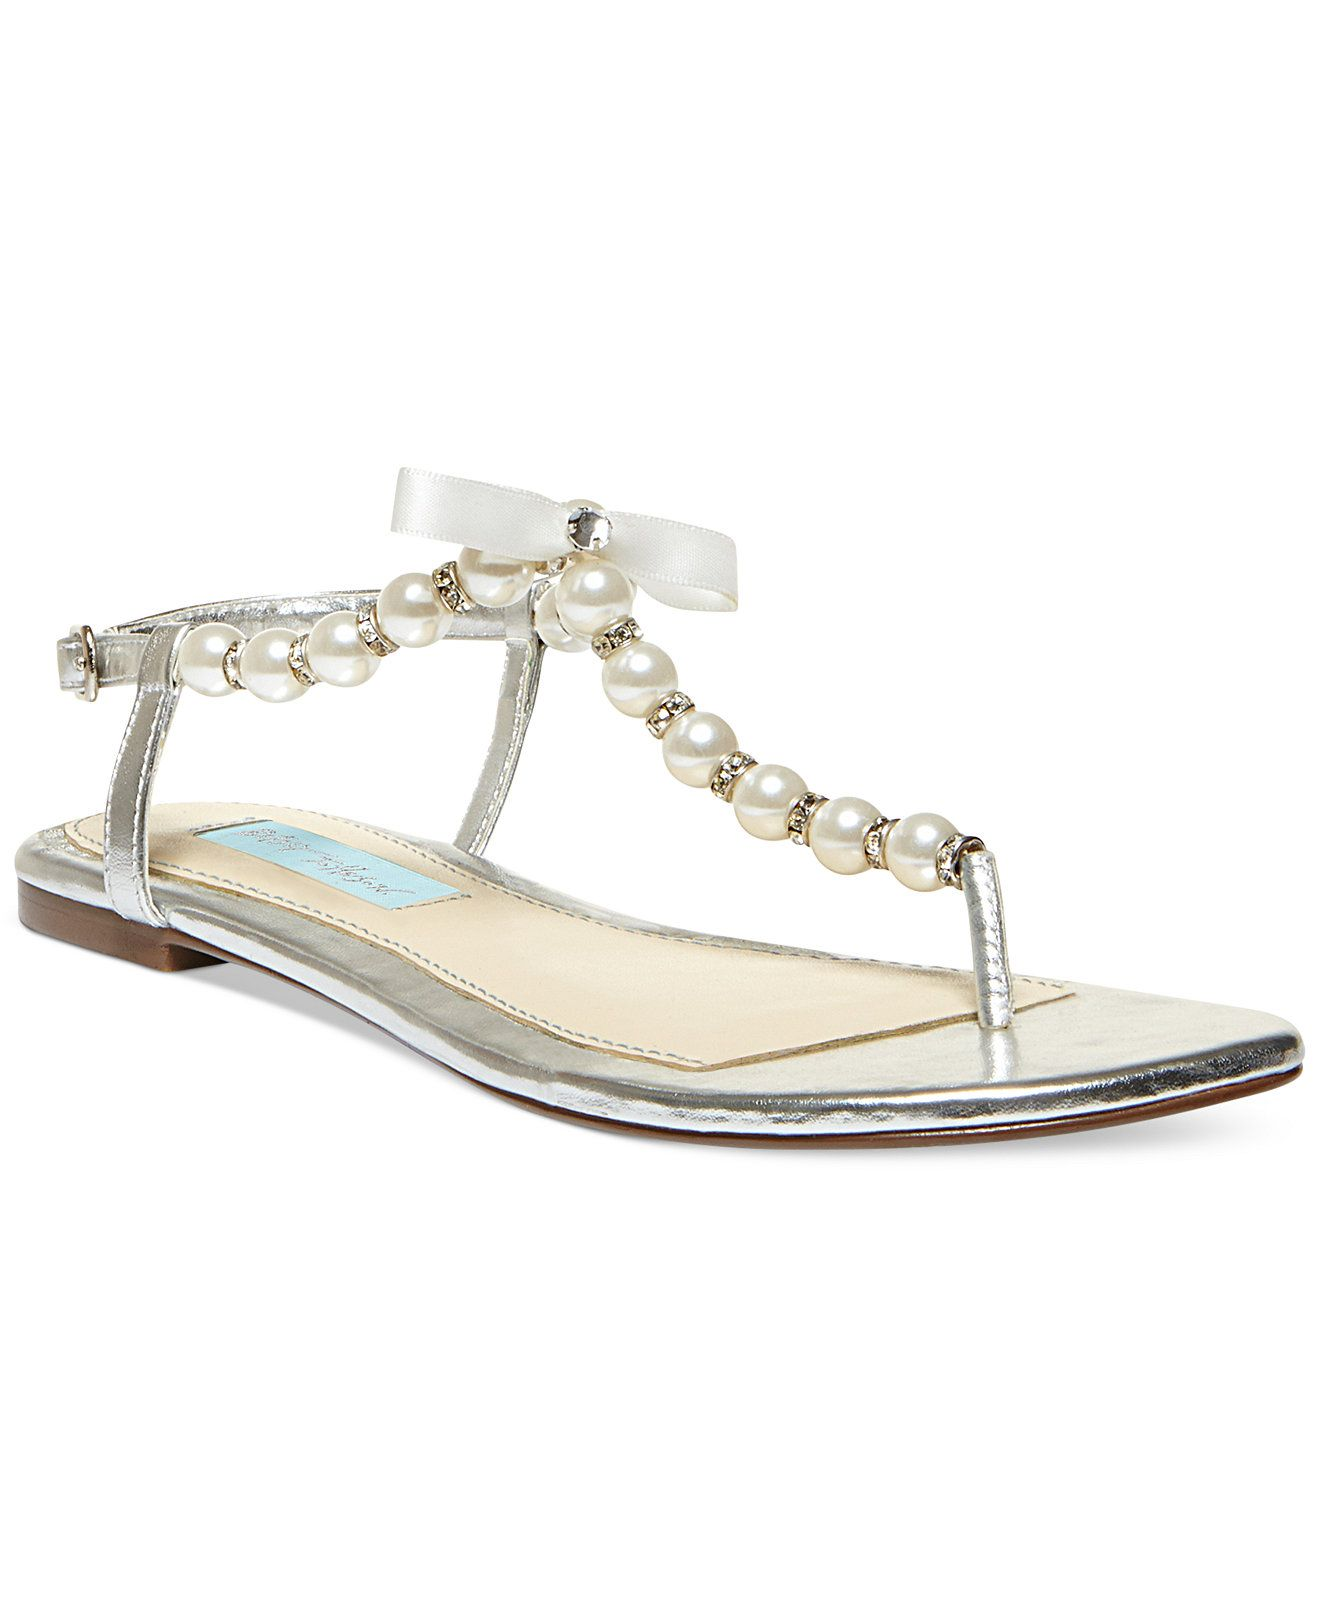 Flat rhinestone sandals for wedding - Blue By Betsey Johnson Pearl Flat Thong Sandals Evening Bridal Shoes Macy S